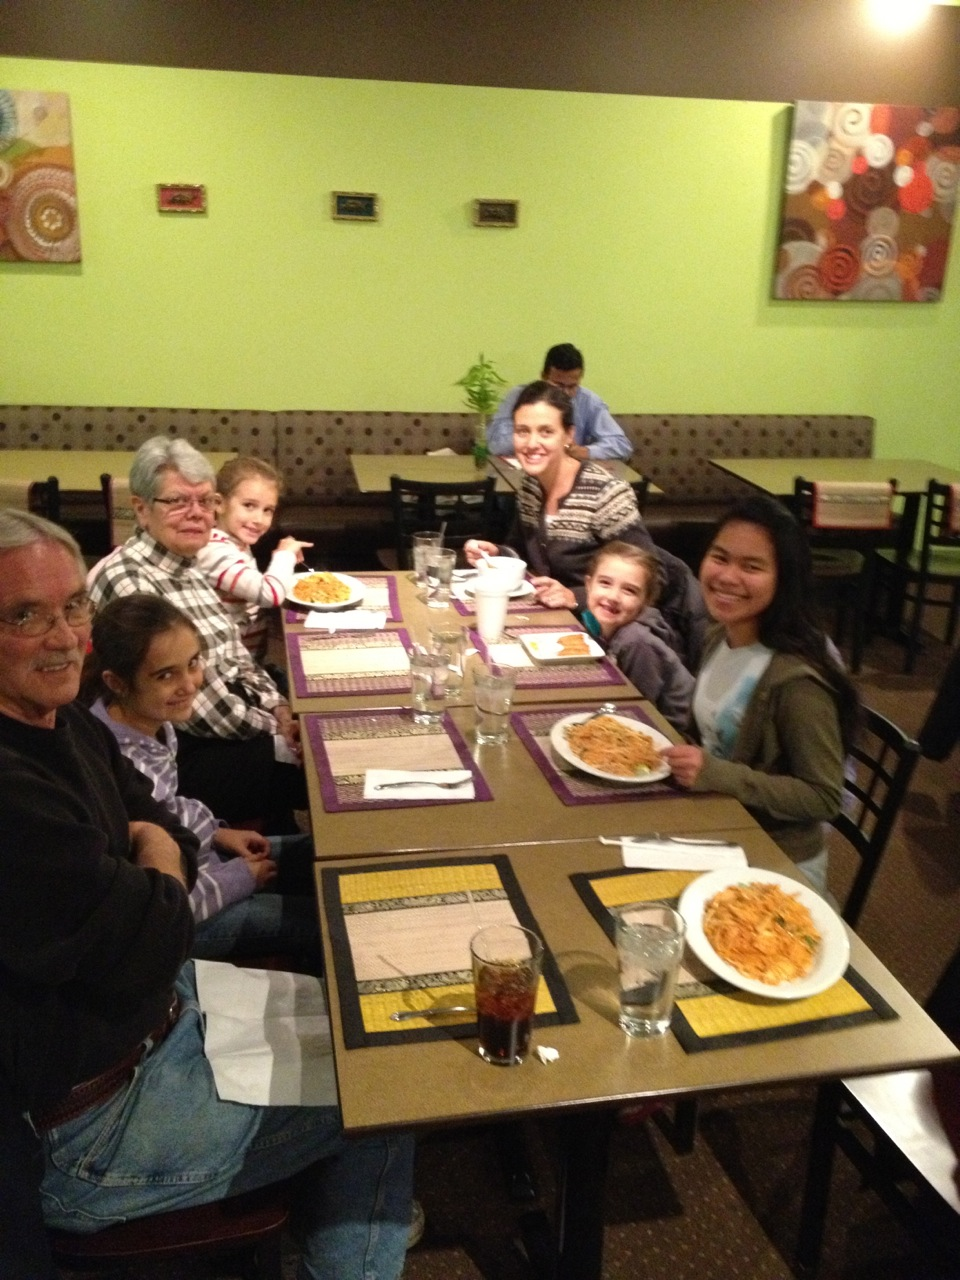 Here's our family plus a grandma and a grandpa eating at a local Thai restaurant in honor of Gotcha Day.